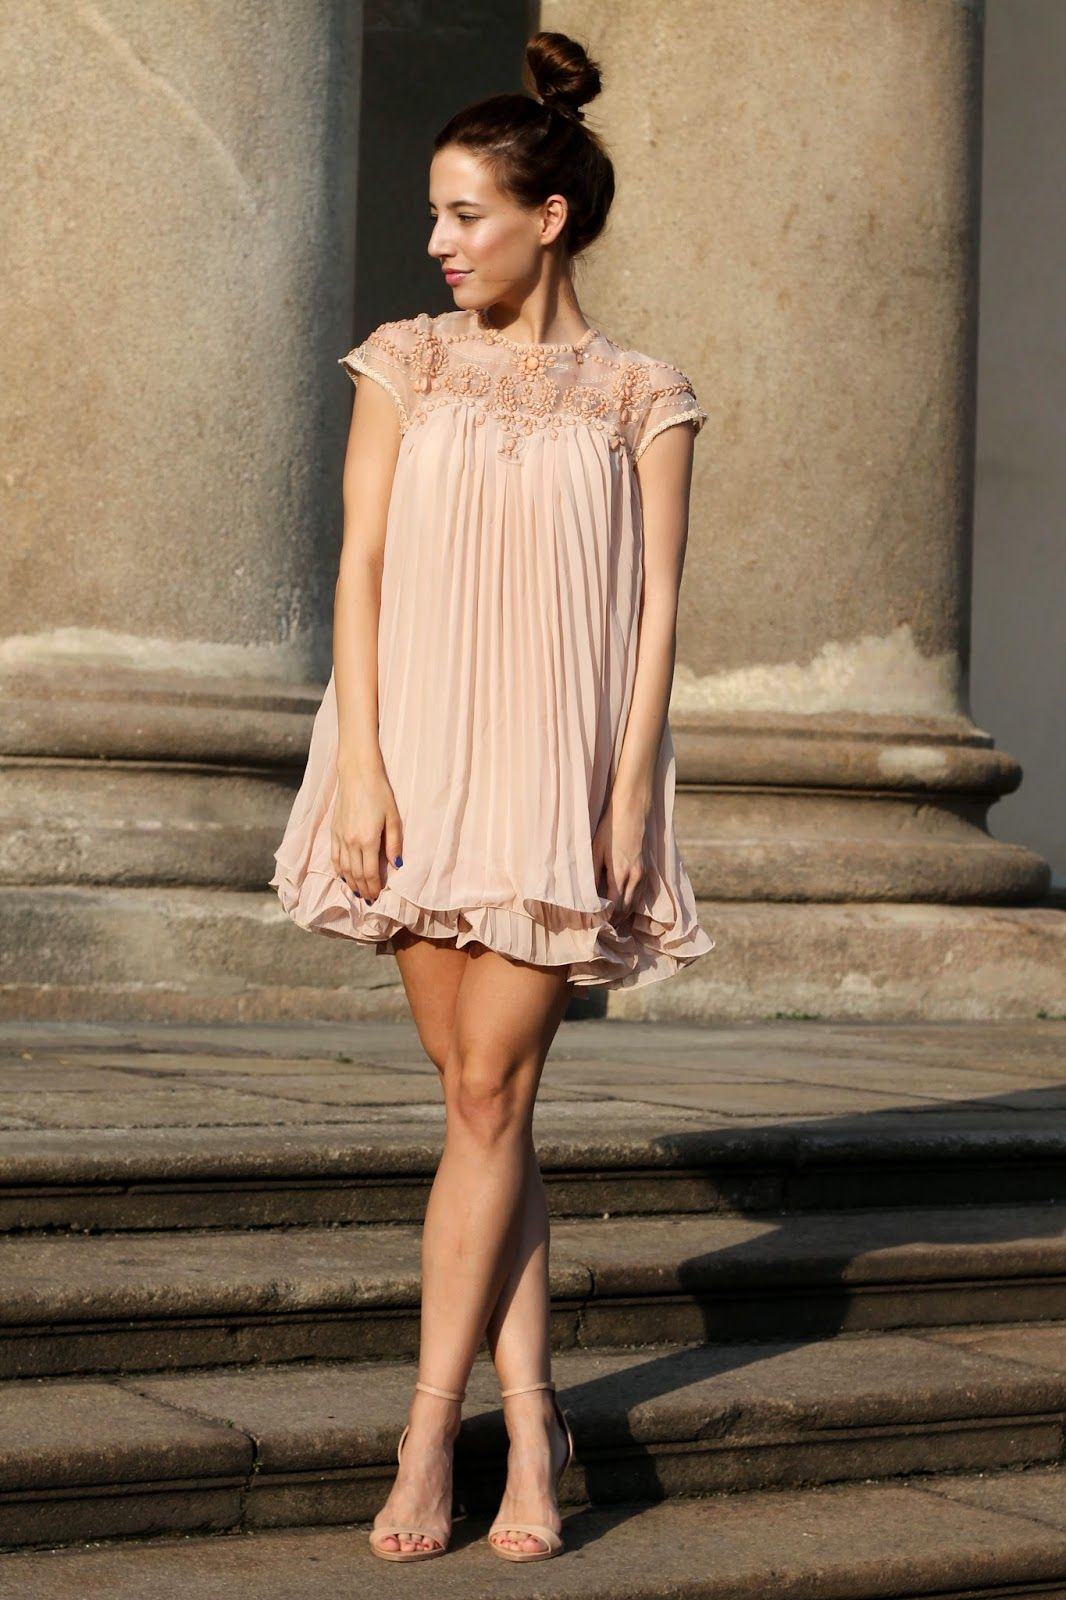 89bafd10716 Street Wear Cute and Sexy Summer Dresses - Be Modish - Be Modish